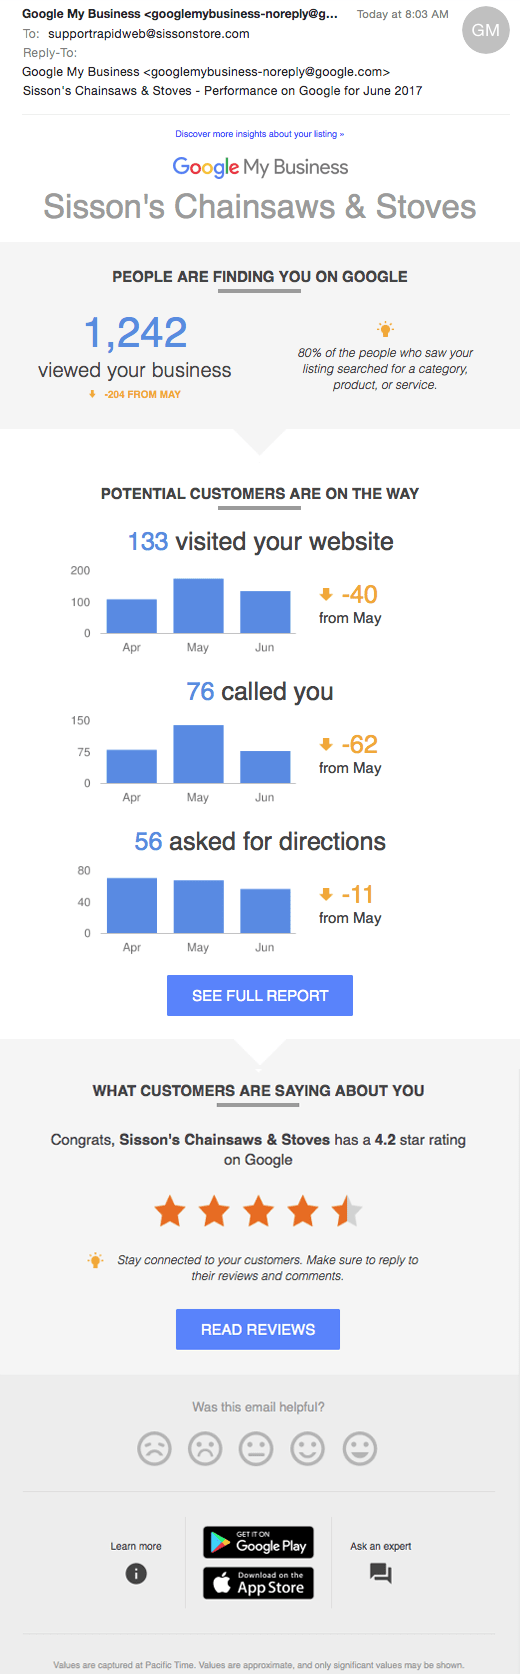 New Google My Business insight email